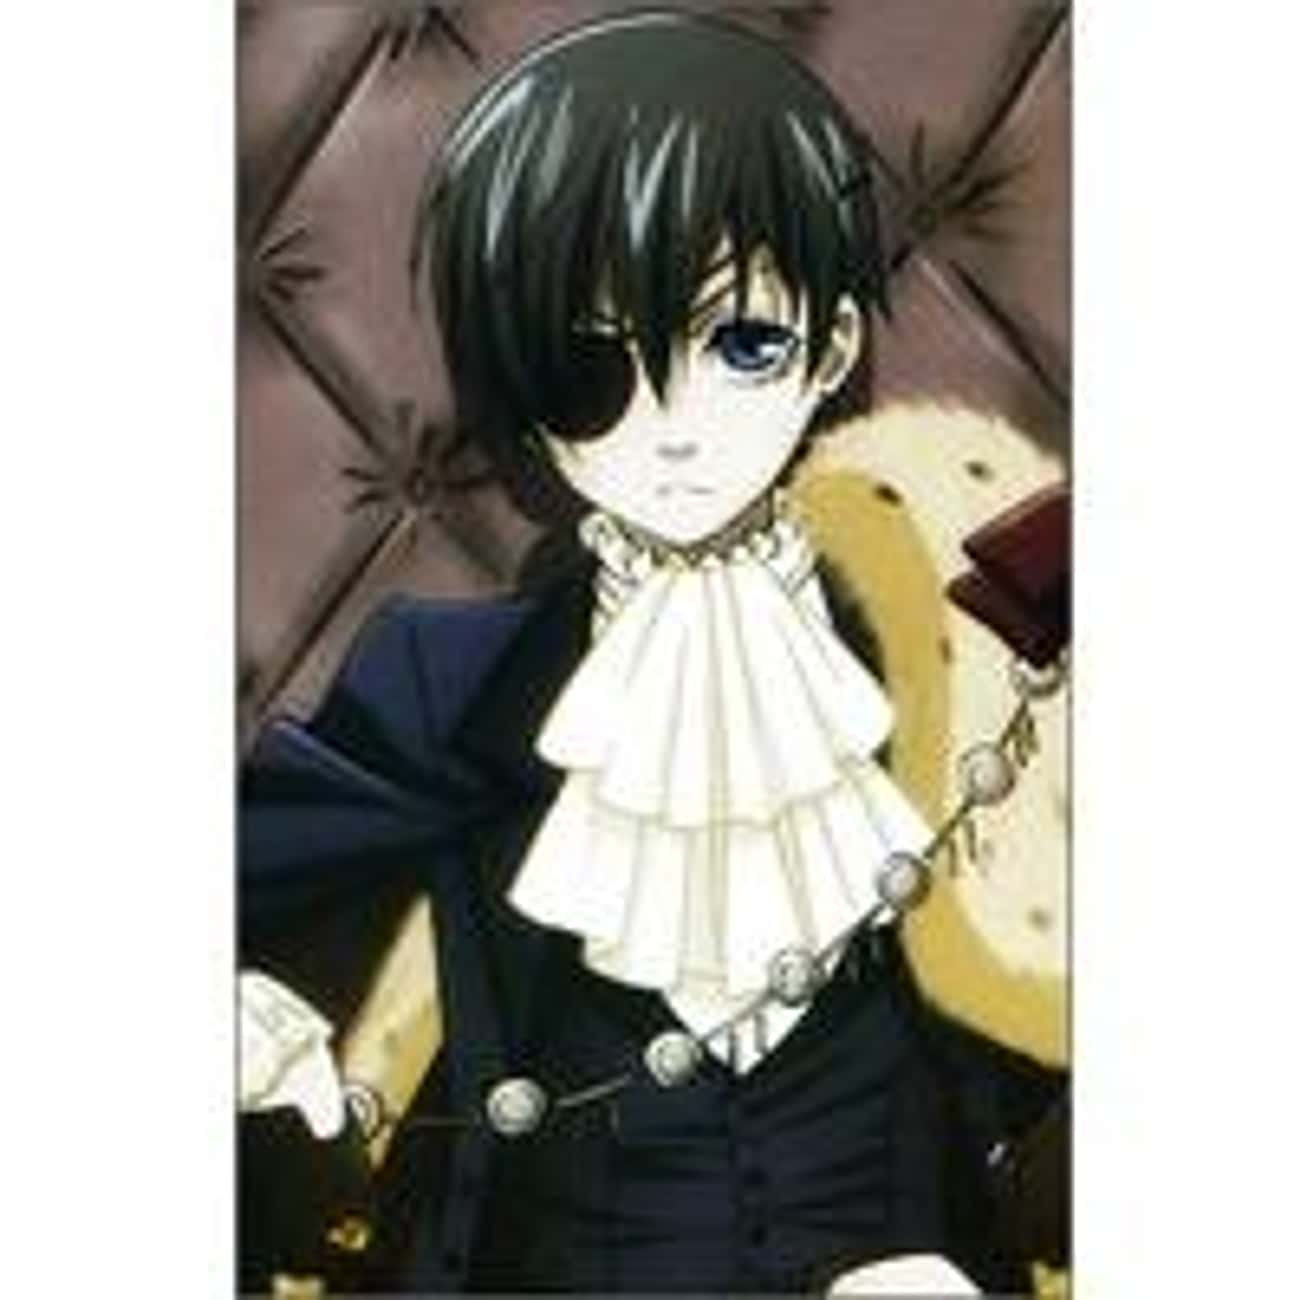 Ciel Phantomhive is listed (or ranked) 1 on the list Ranking the 30+ Best Wealthy Anime Characters